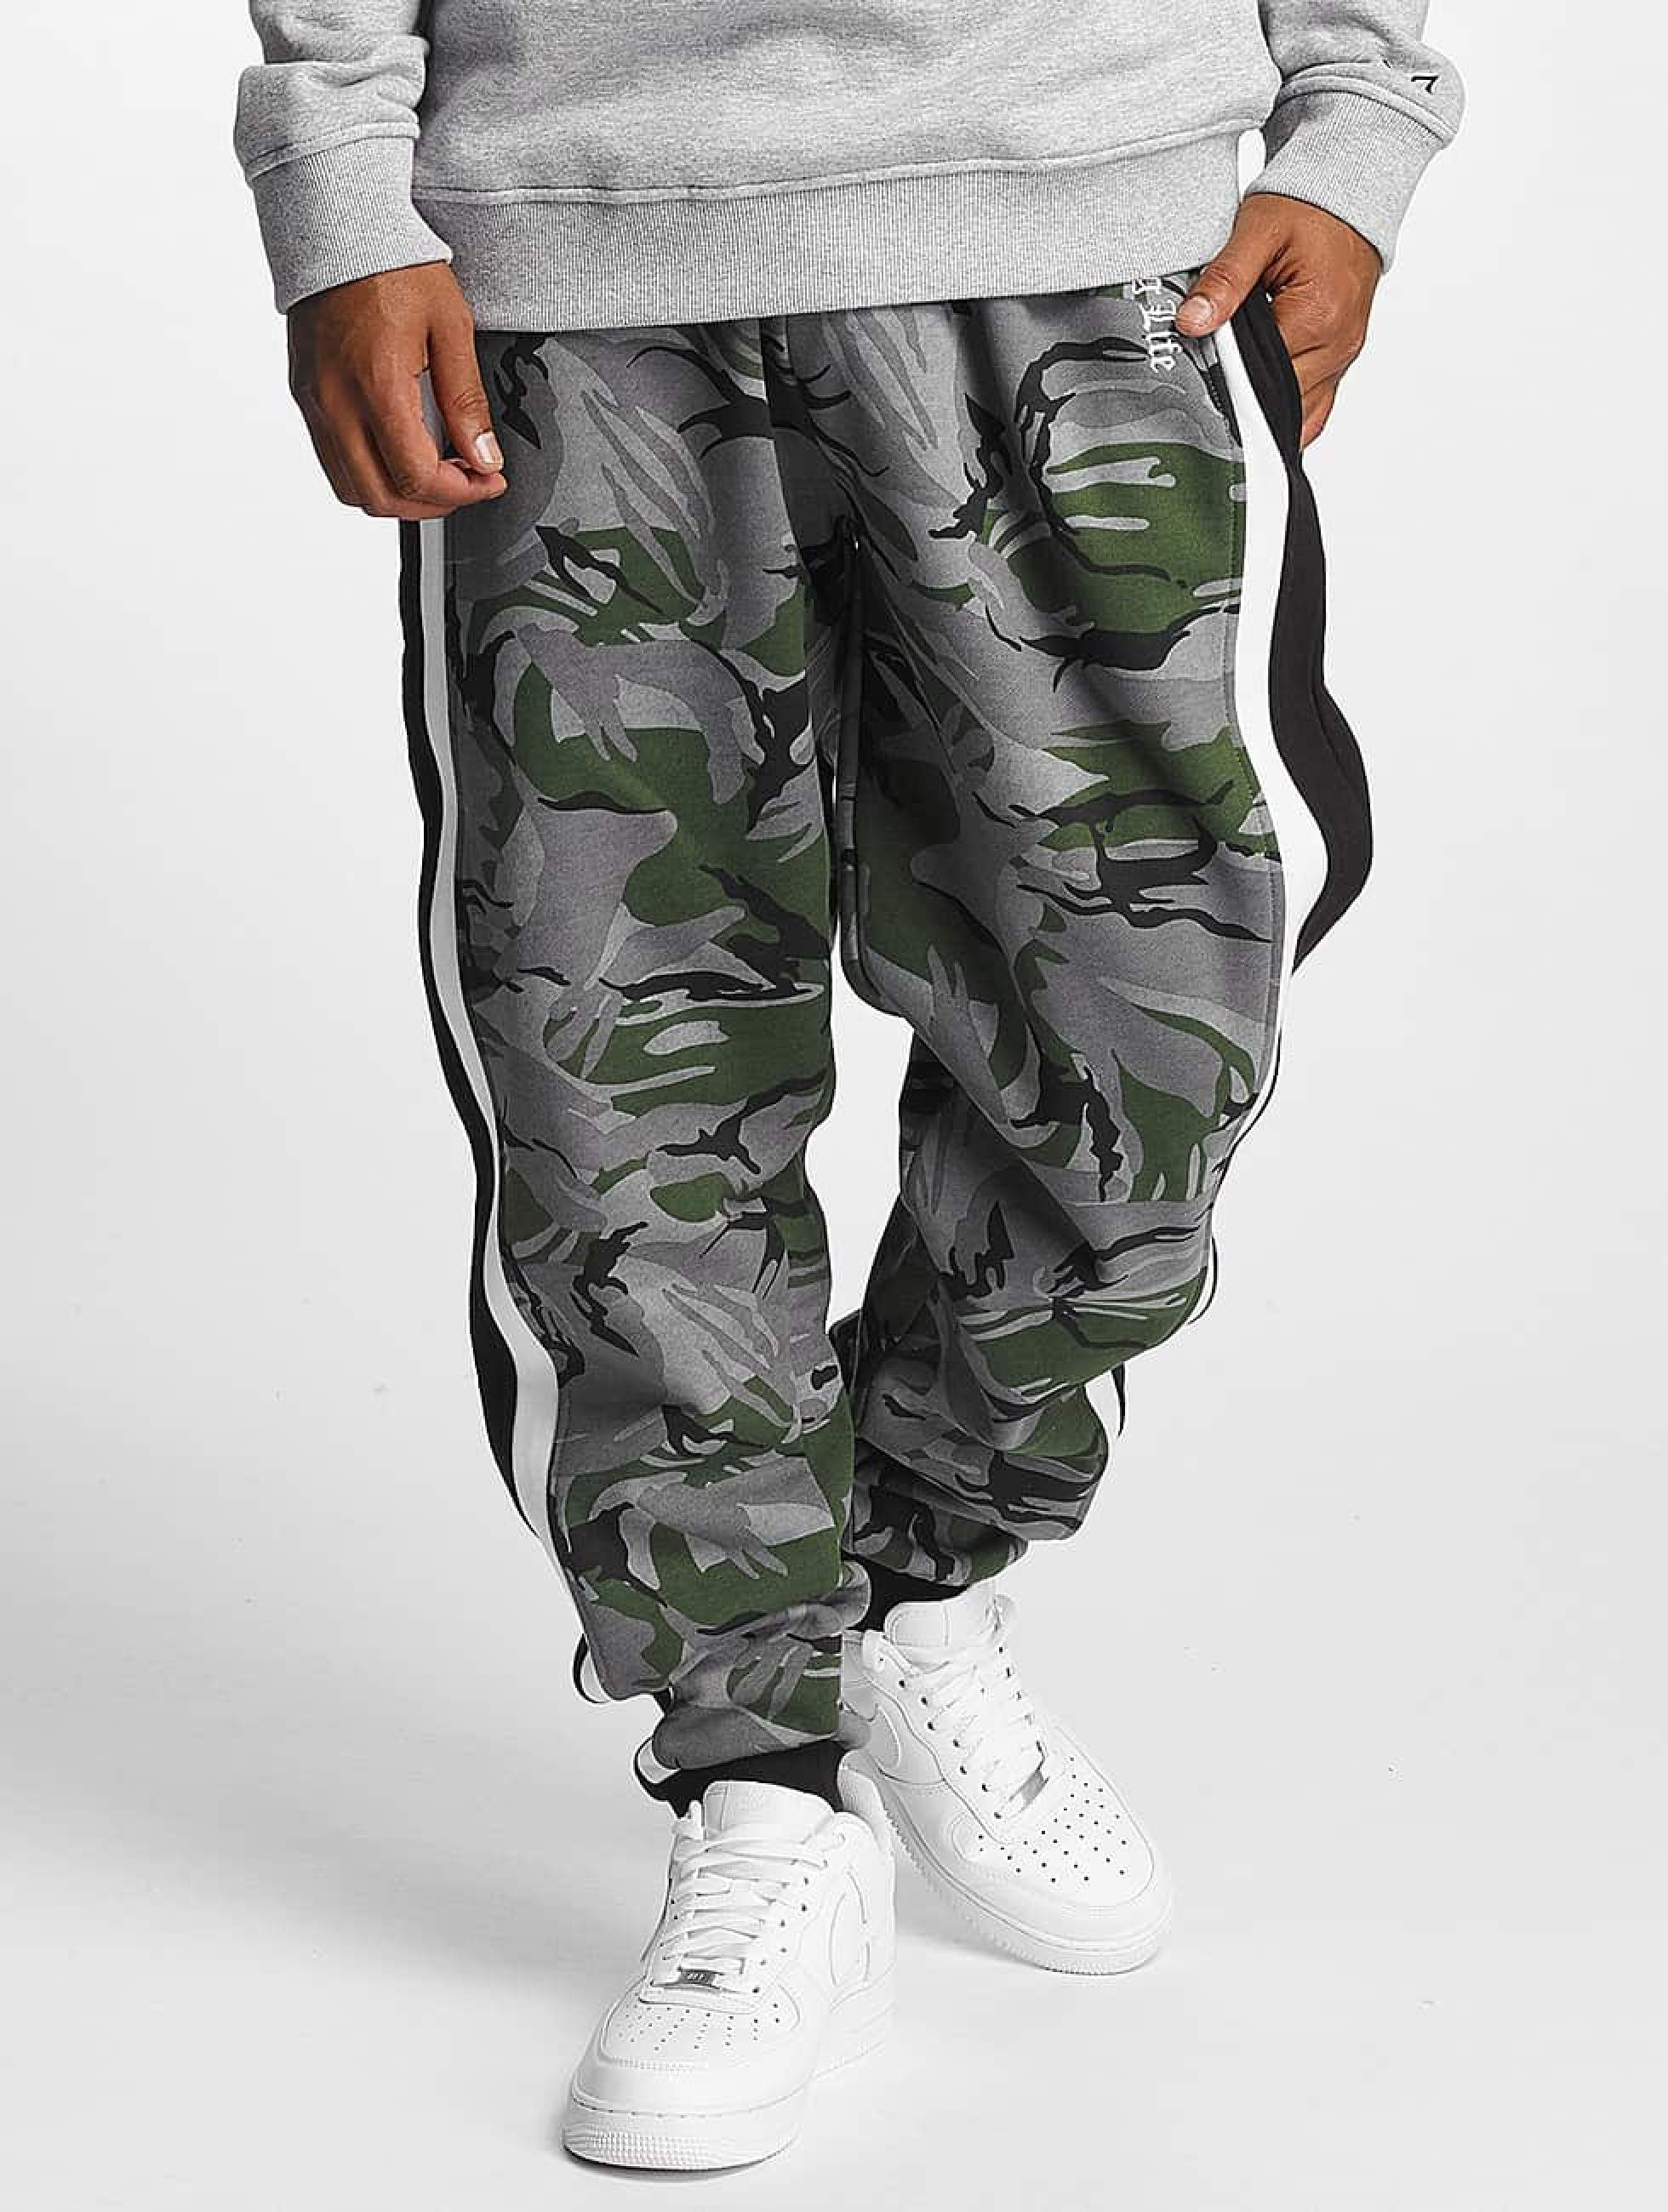 Thug Life / Sweat Pant Lecter in camouflage S